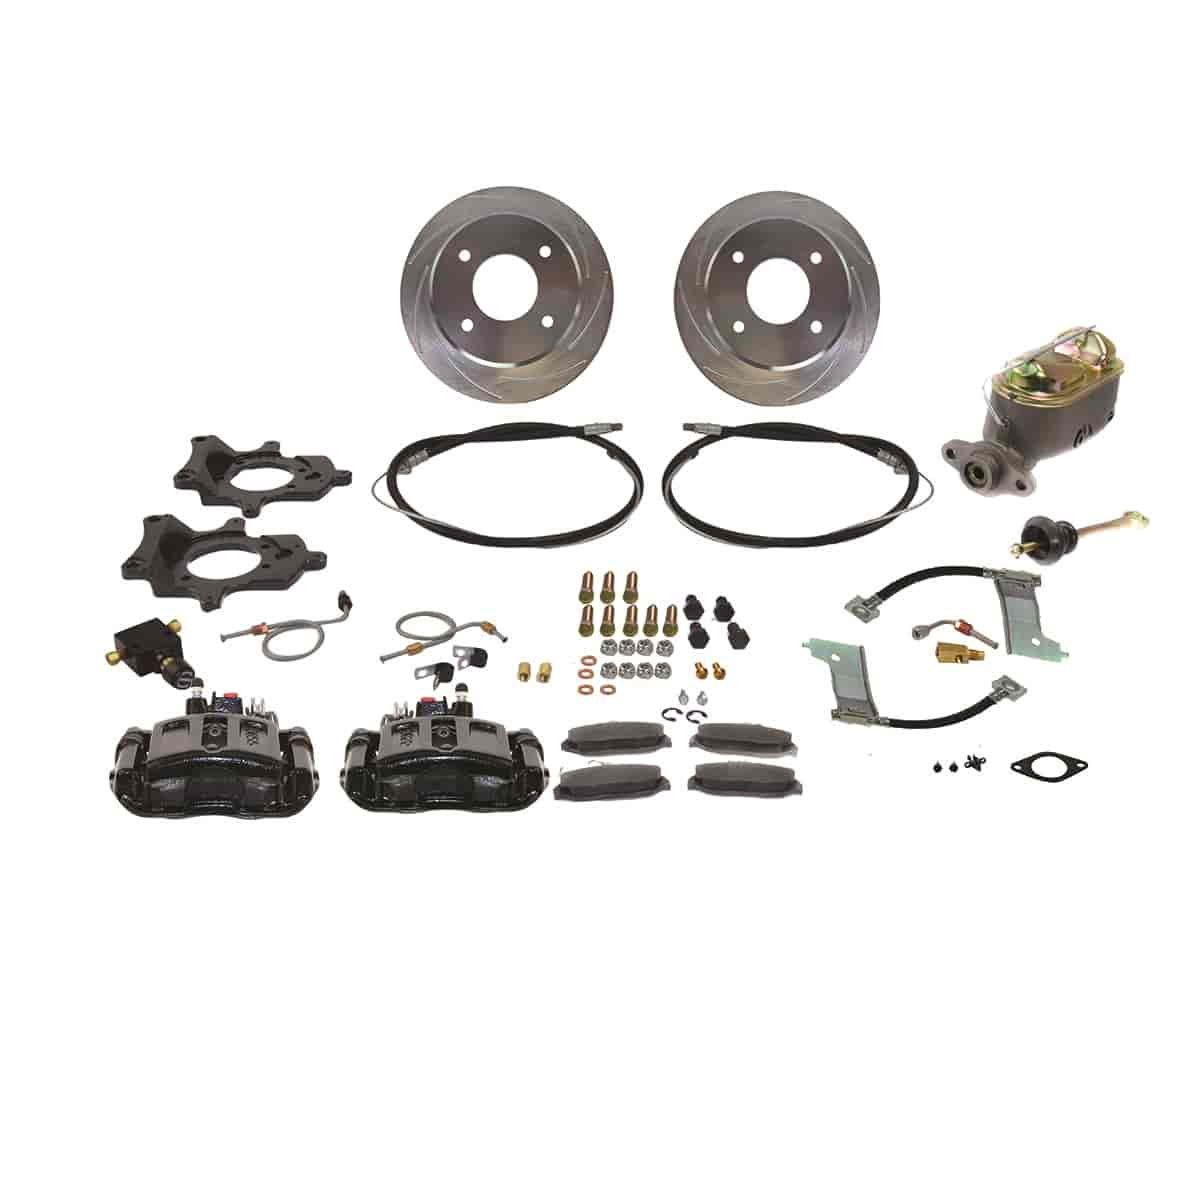 Stainless Steel Brakes A112-1BK - Stainless Steel Brakes Single Piston Rear Drum to Disc Brake Conversion Kits